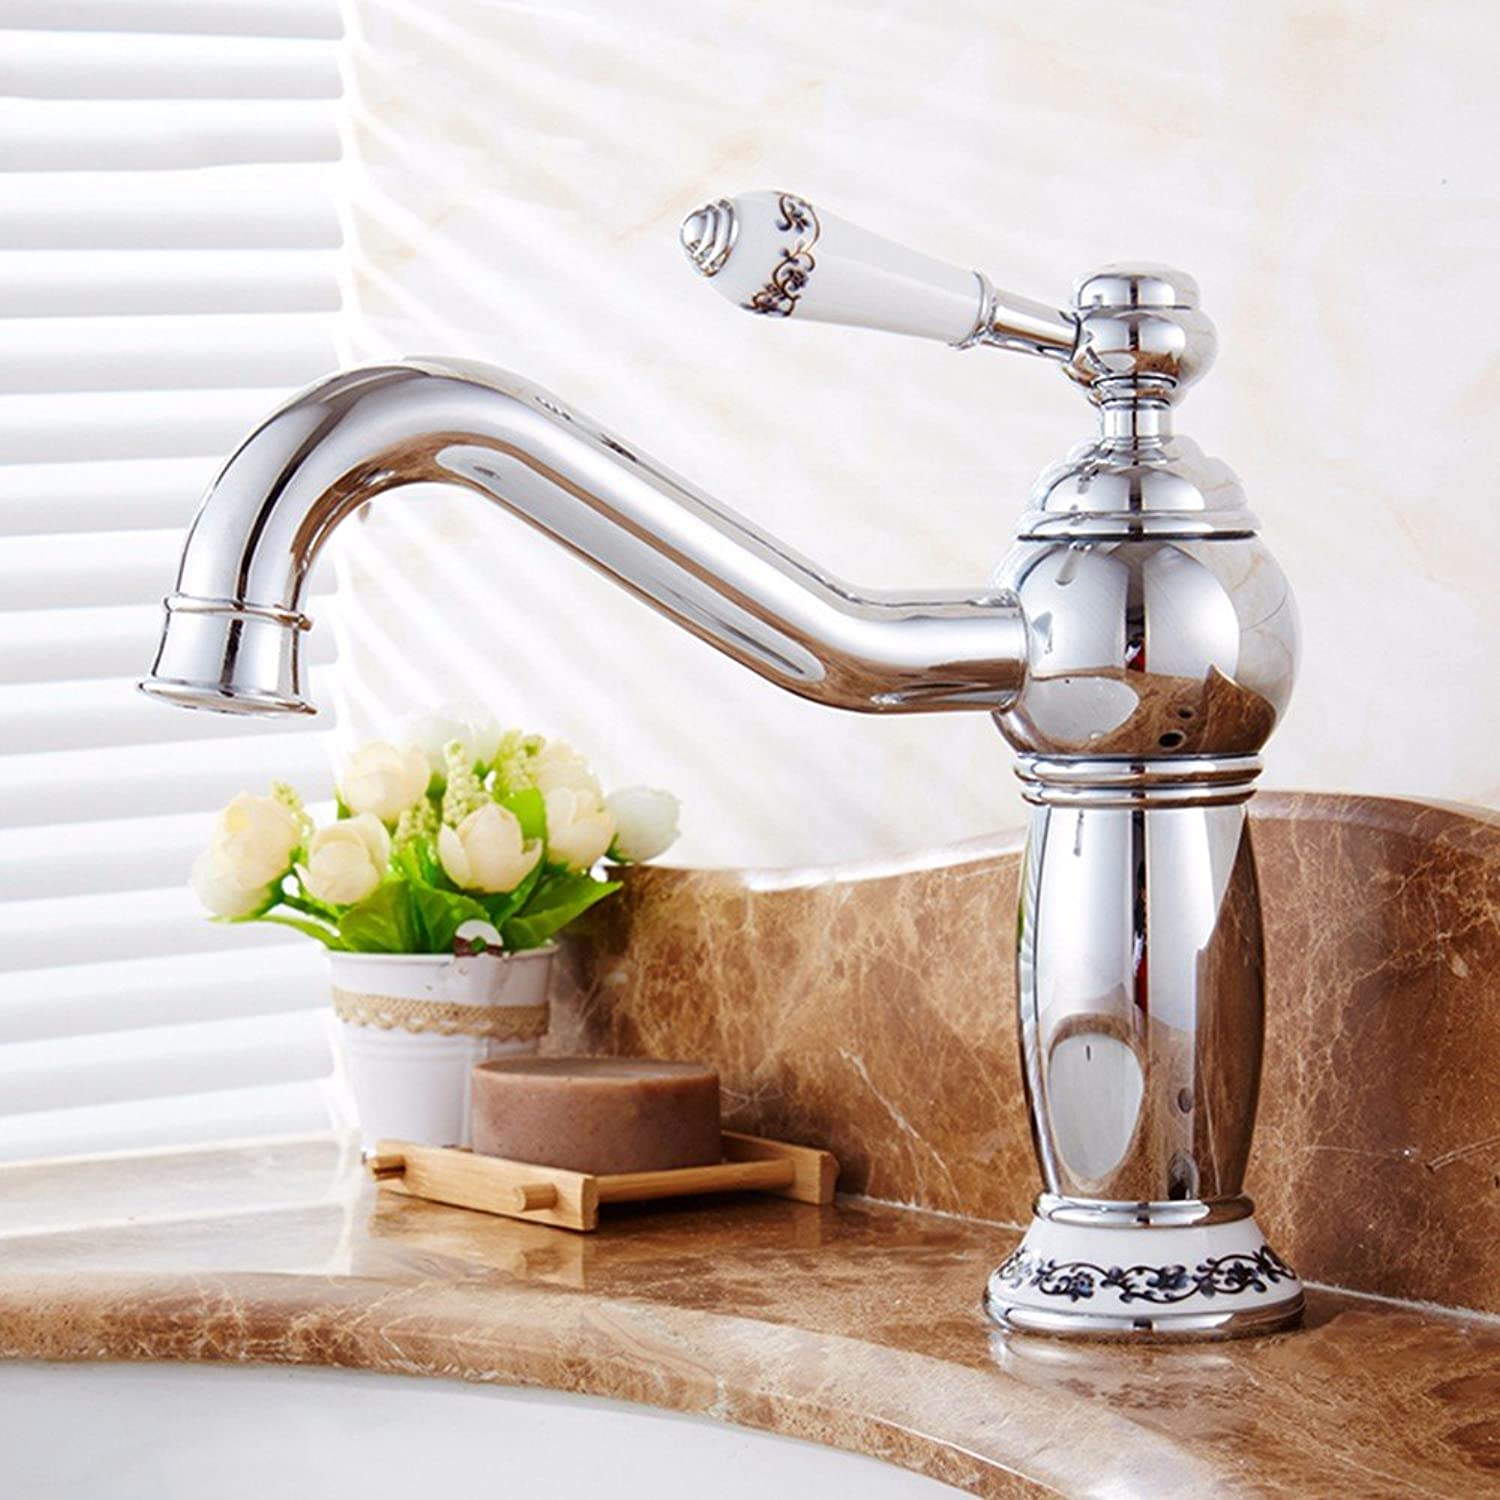 LHbox Basin Mixer Tap Bathroom Sink Faucet European retro style, copper, hot and cold, the basin, single handle, plus high, Single Hole, sink Faucet 11